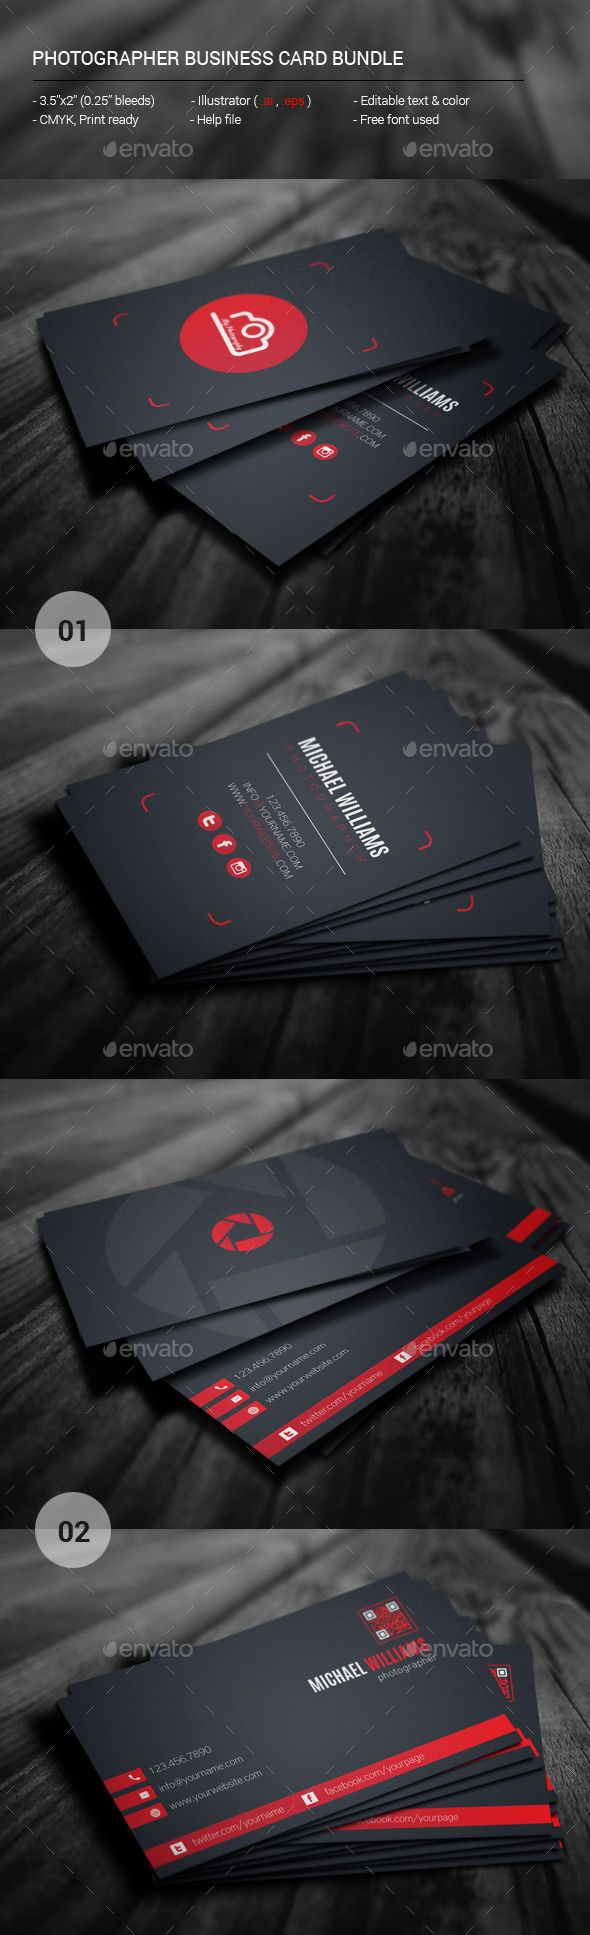 Best 25 photographer business cards ideas on pinterest best 25 photographer business cards ideas on pinterest photography business cards best visiting card designs and free business card design magicingreecefo Gallery